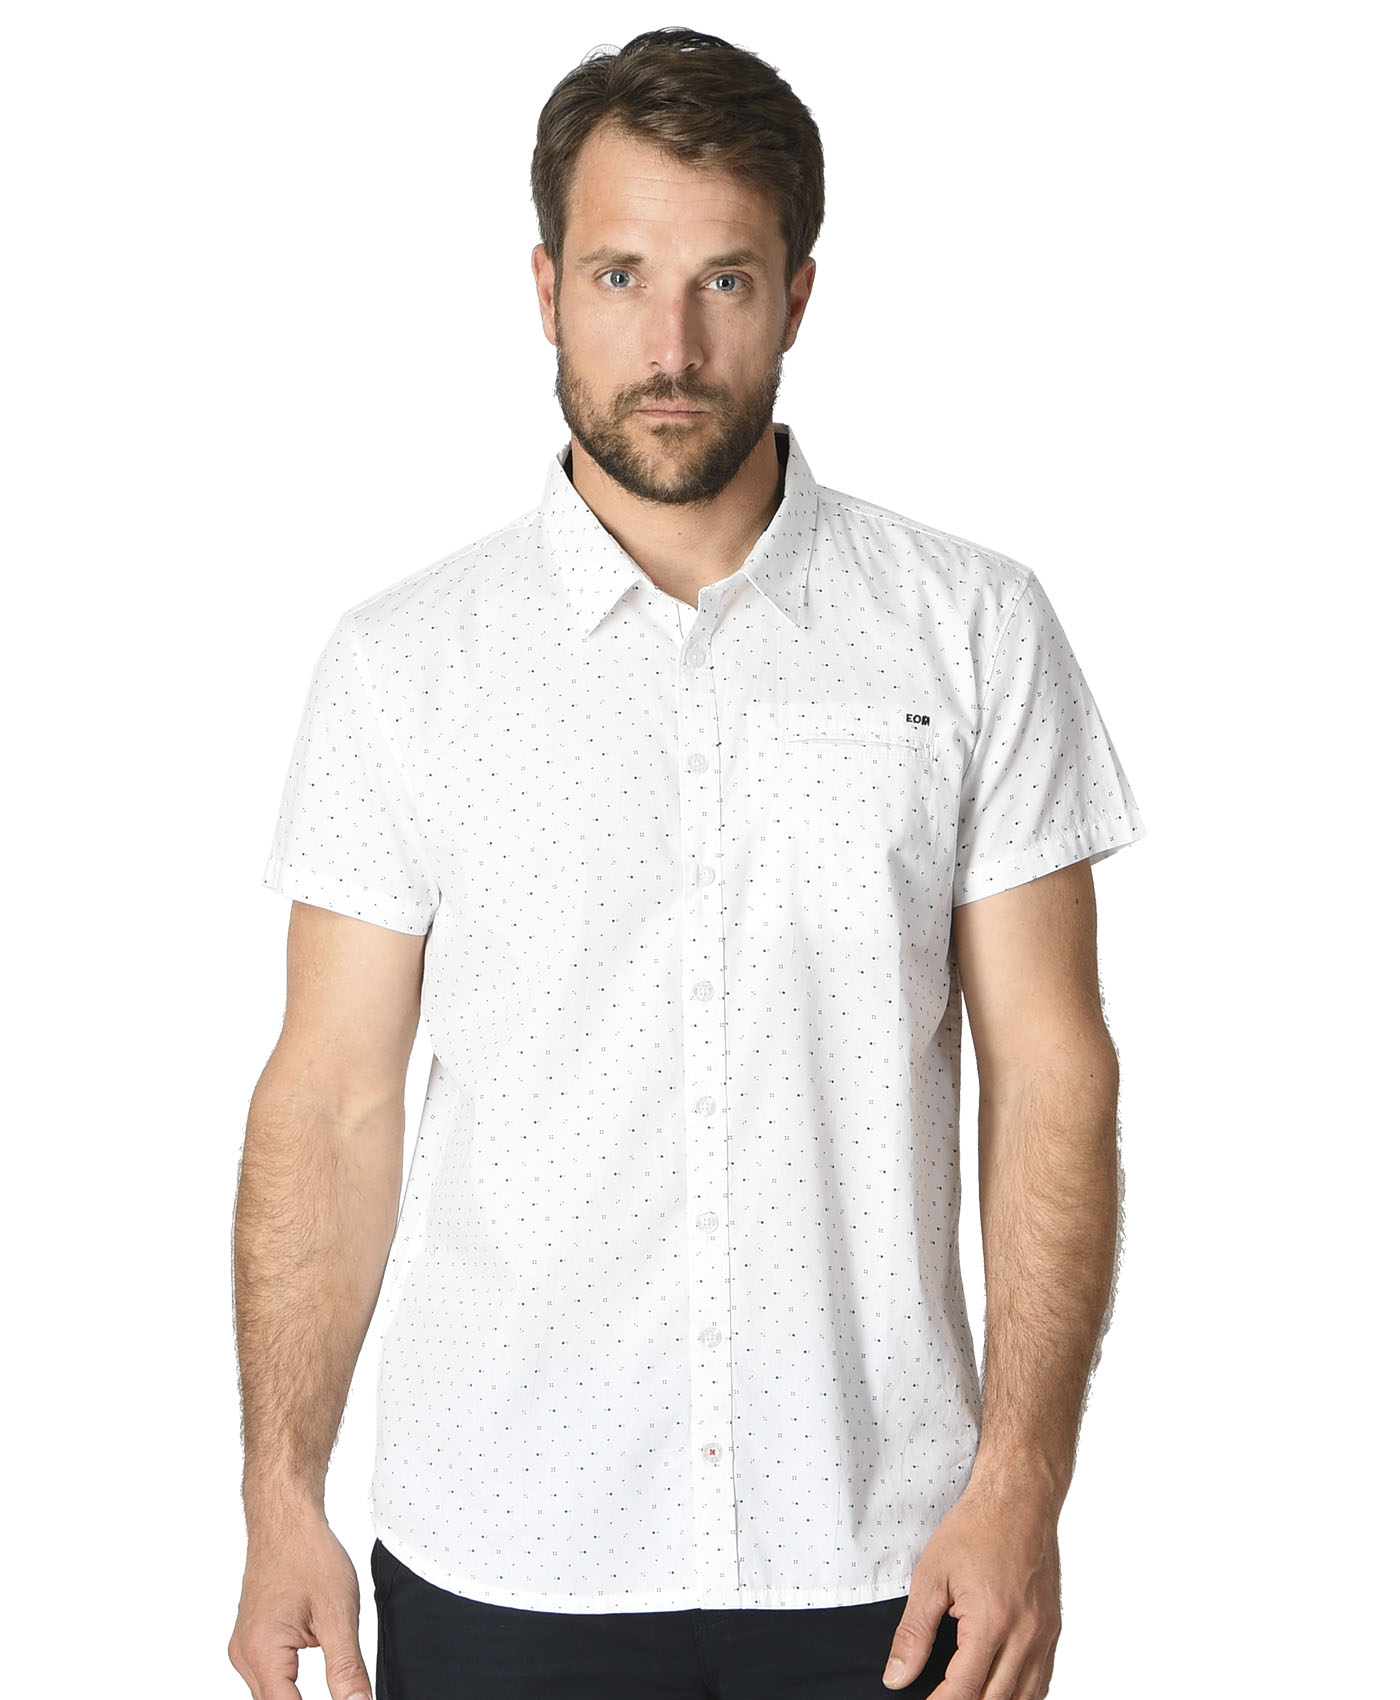 Chemise manches courtes blanche homme - Mode marine Homme